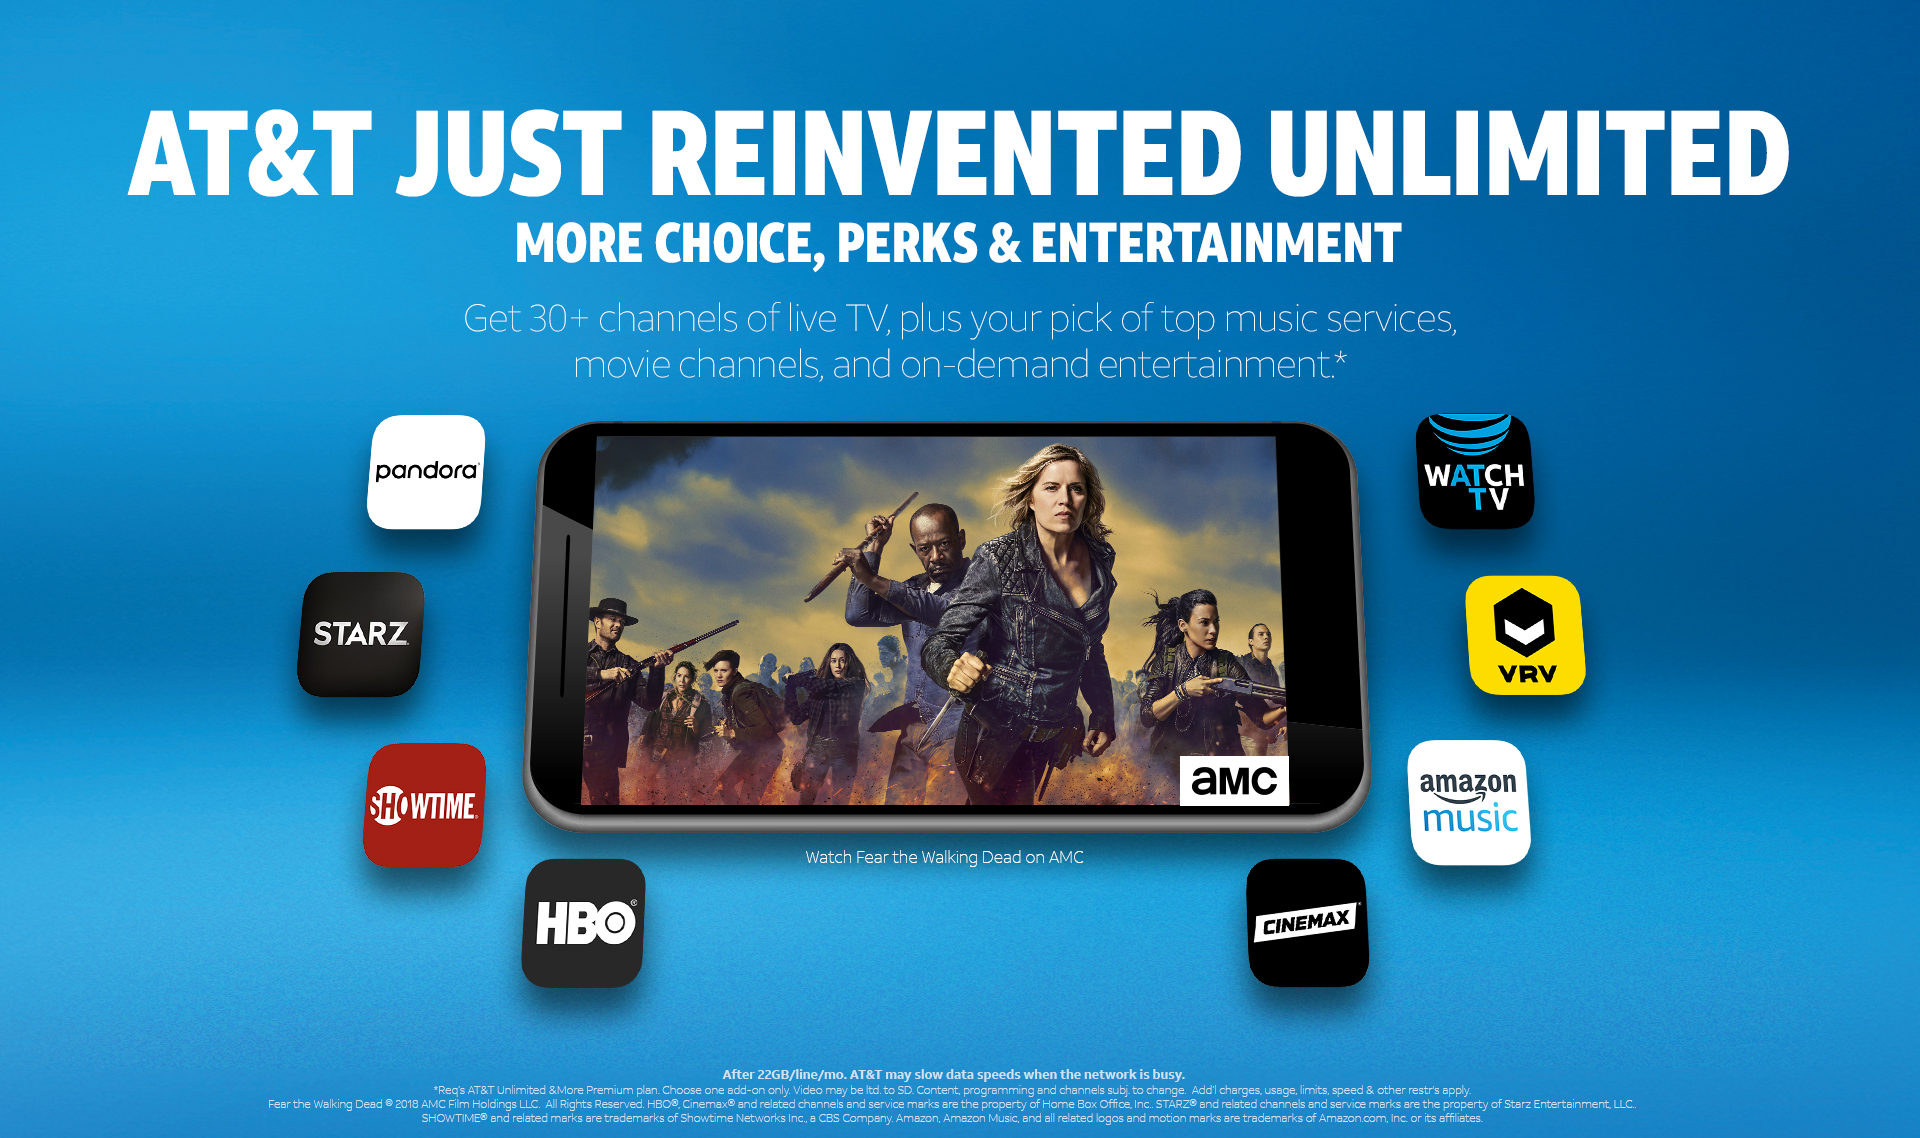 AT&T Announces New WatchTV Streaming Video Service